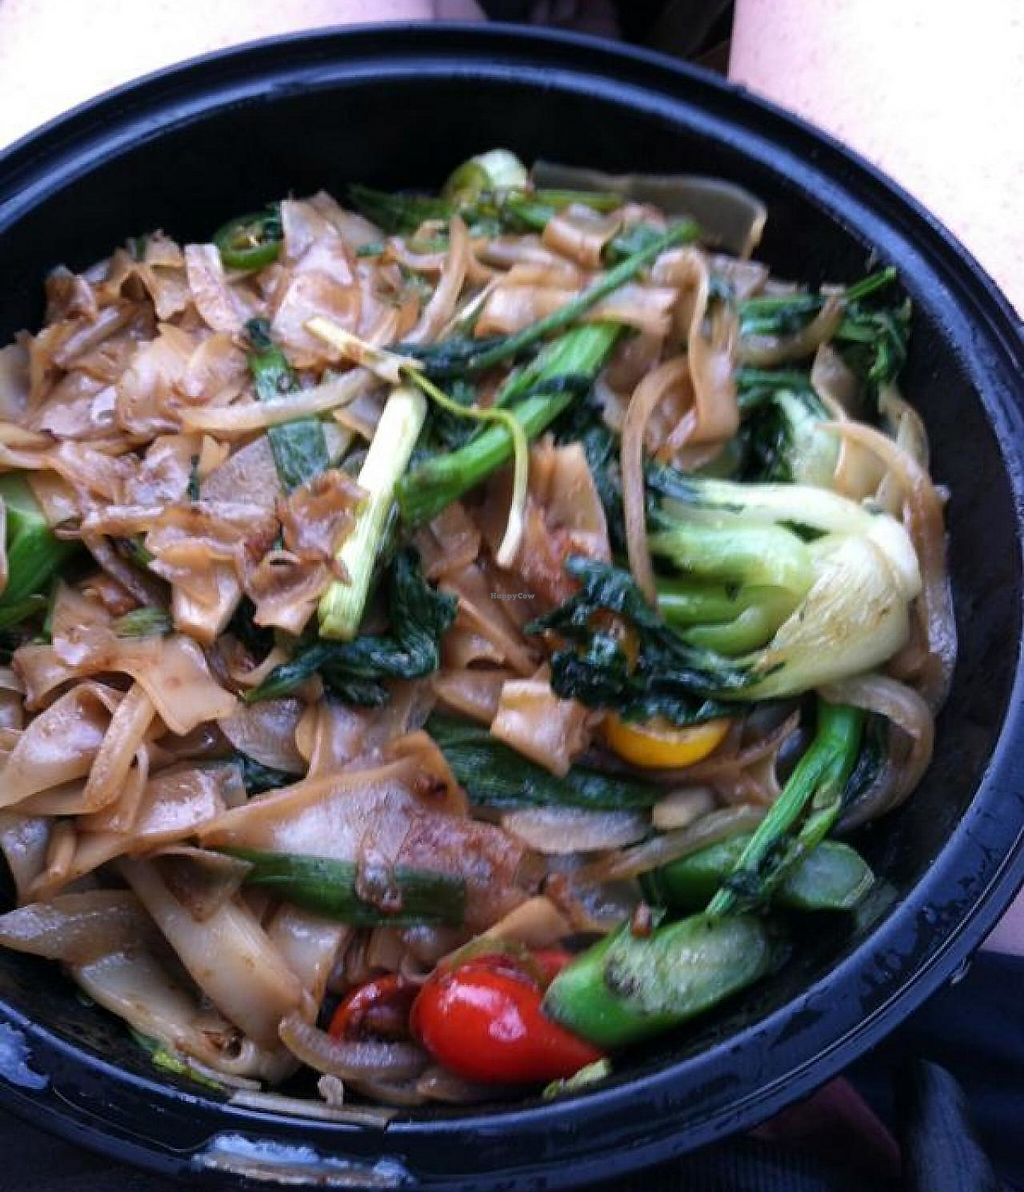 """Photo of Wynn Hotel - Wazuzu  by <a href=""""/members/profile/Meggie%20and%20Ben"""">Meggie and Ben</a> <br/>Drunken noodles to go <br/> December 1, 2014  - <a href='/contact/abuse/image/21258/207729'>Report</a>"""